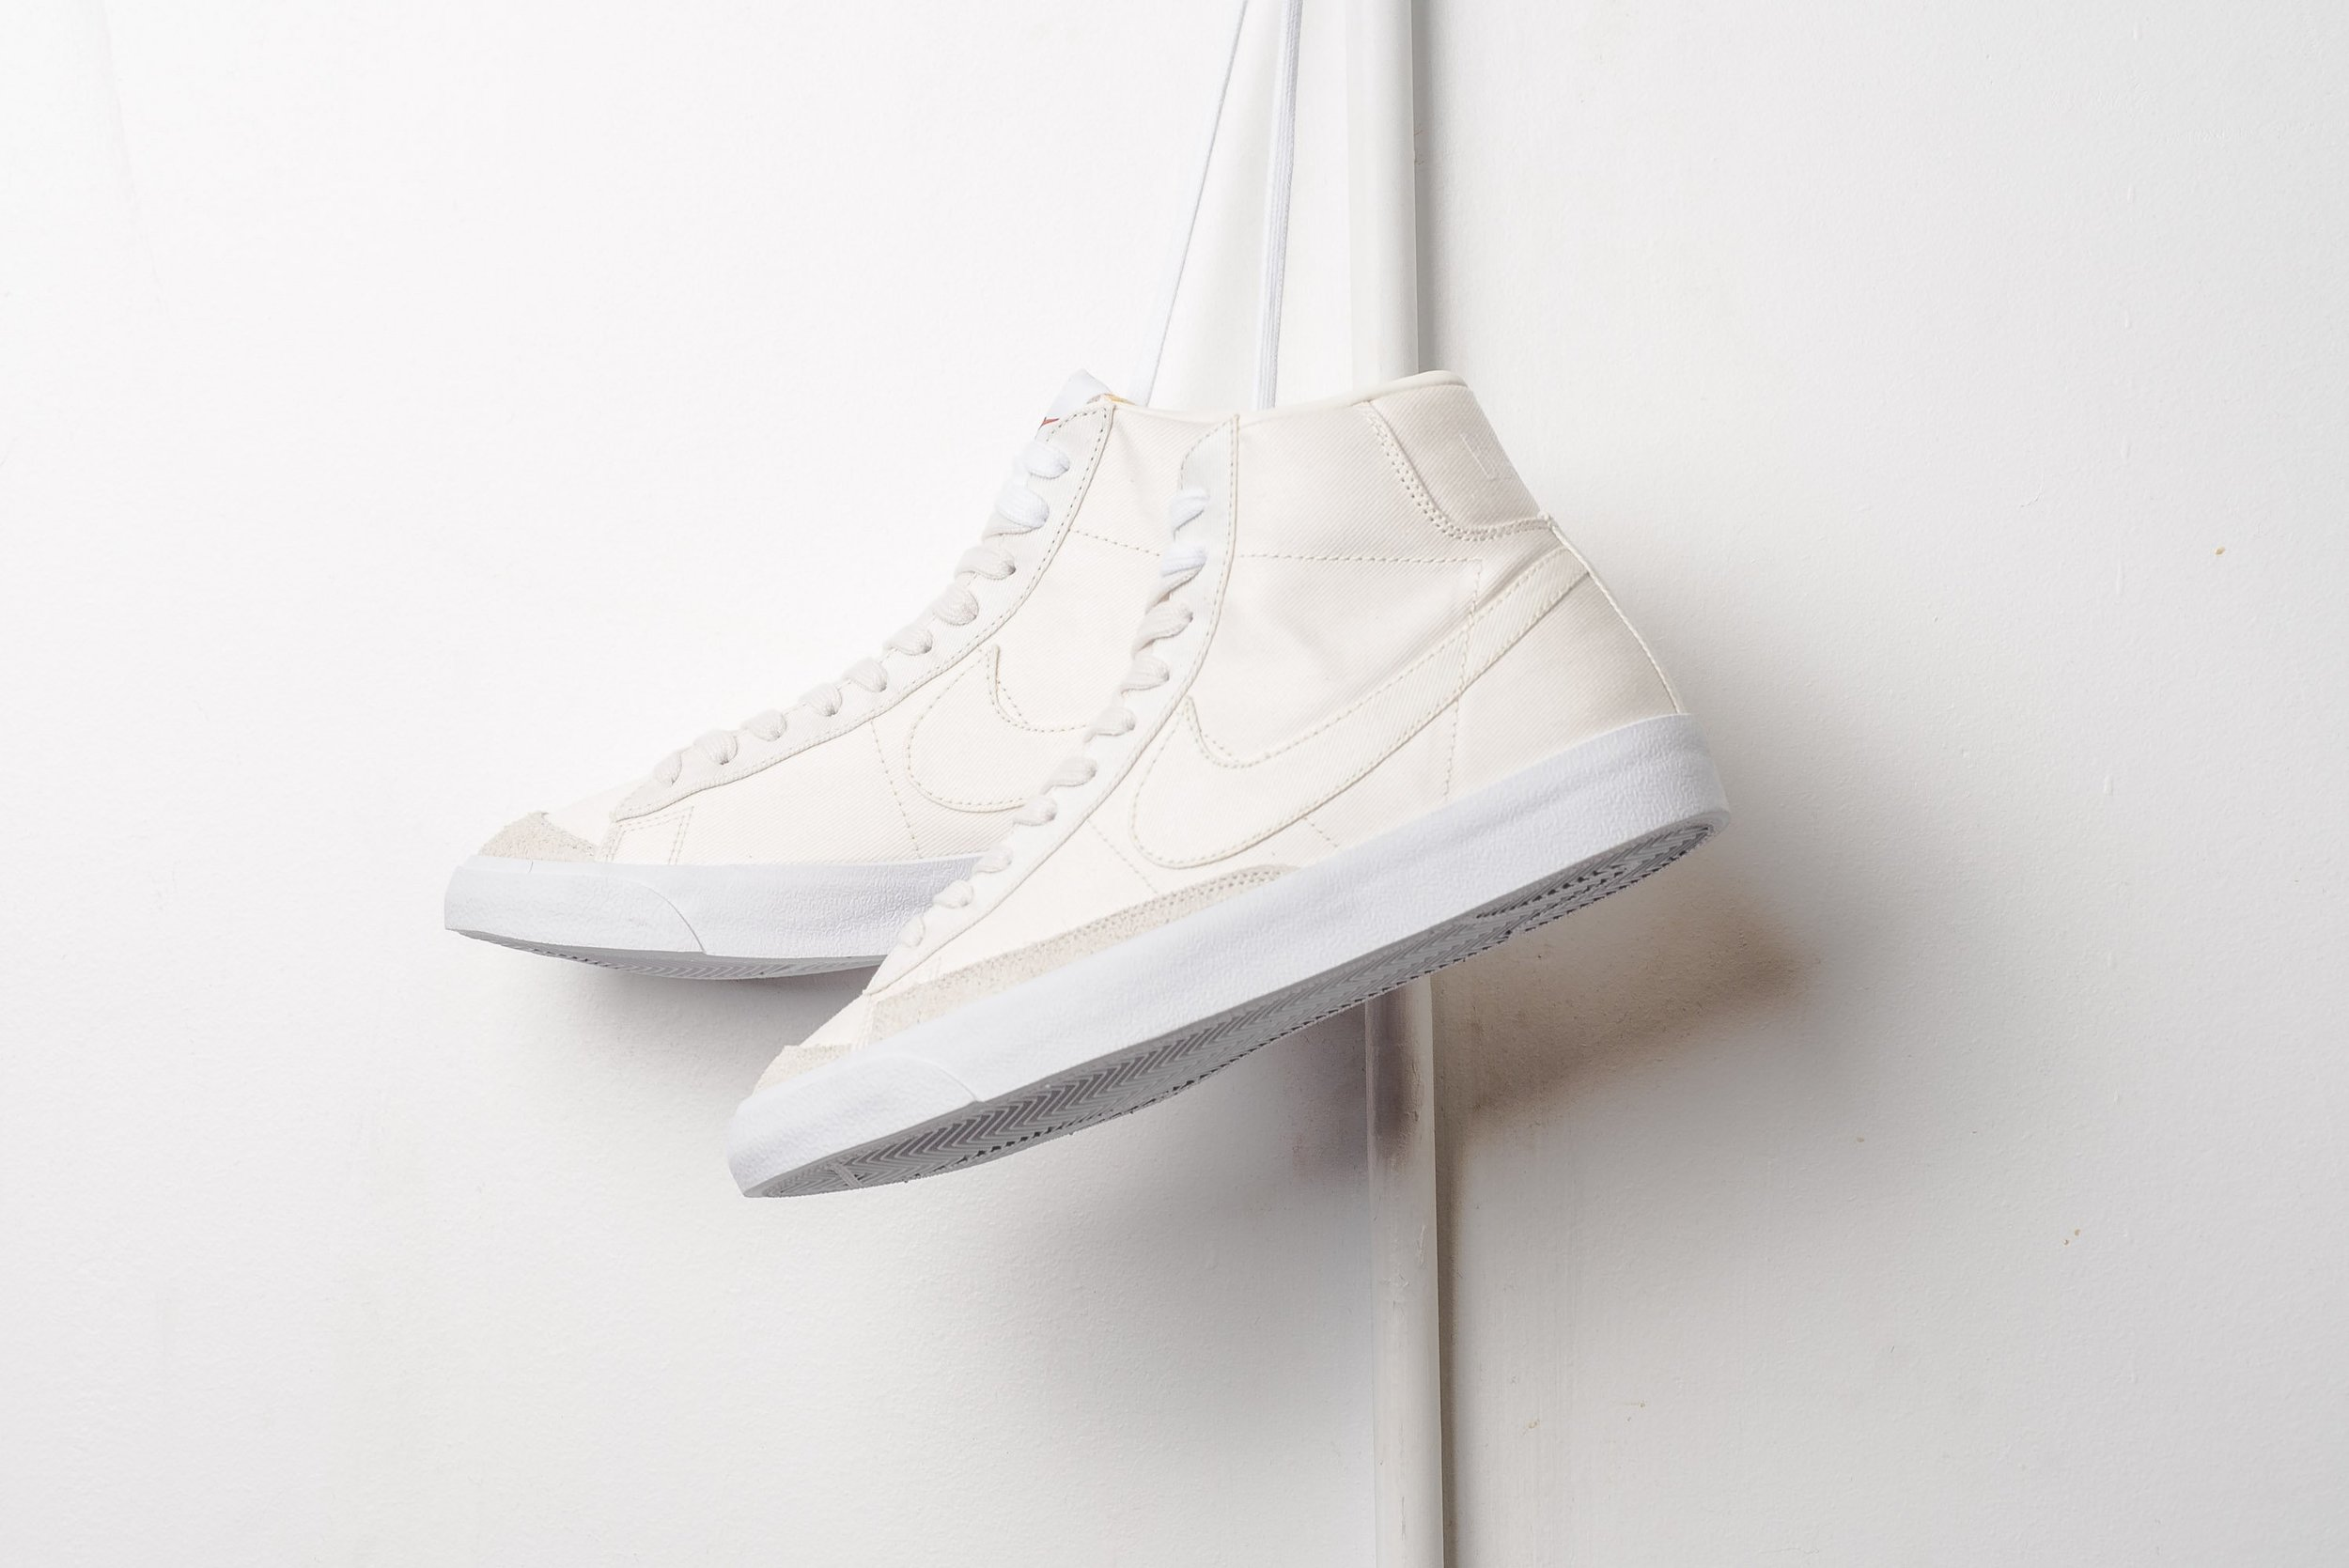 Nike_Blazer_Mid_77_Vintage_WE_Sail_Sail_White_cd8238-100_sneaker_politics_-2.jpg